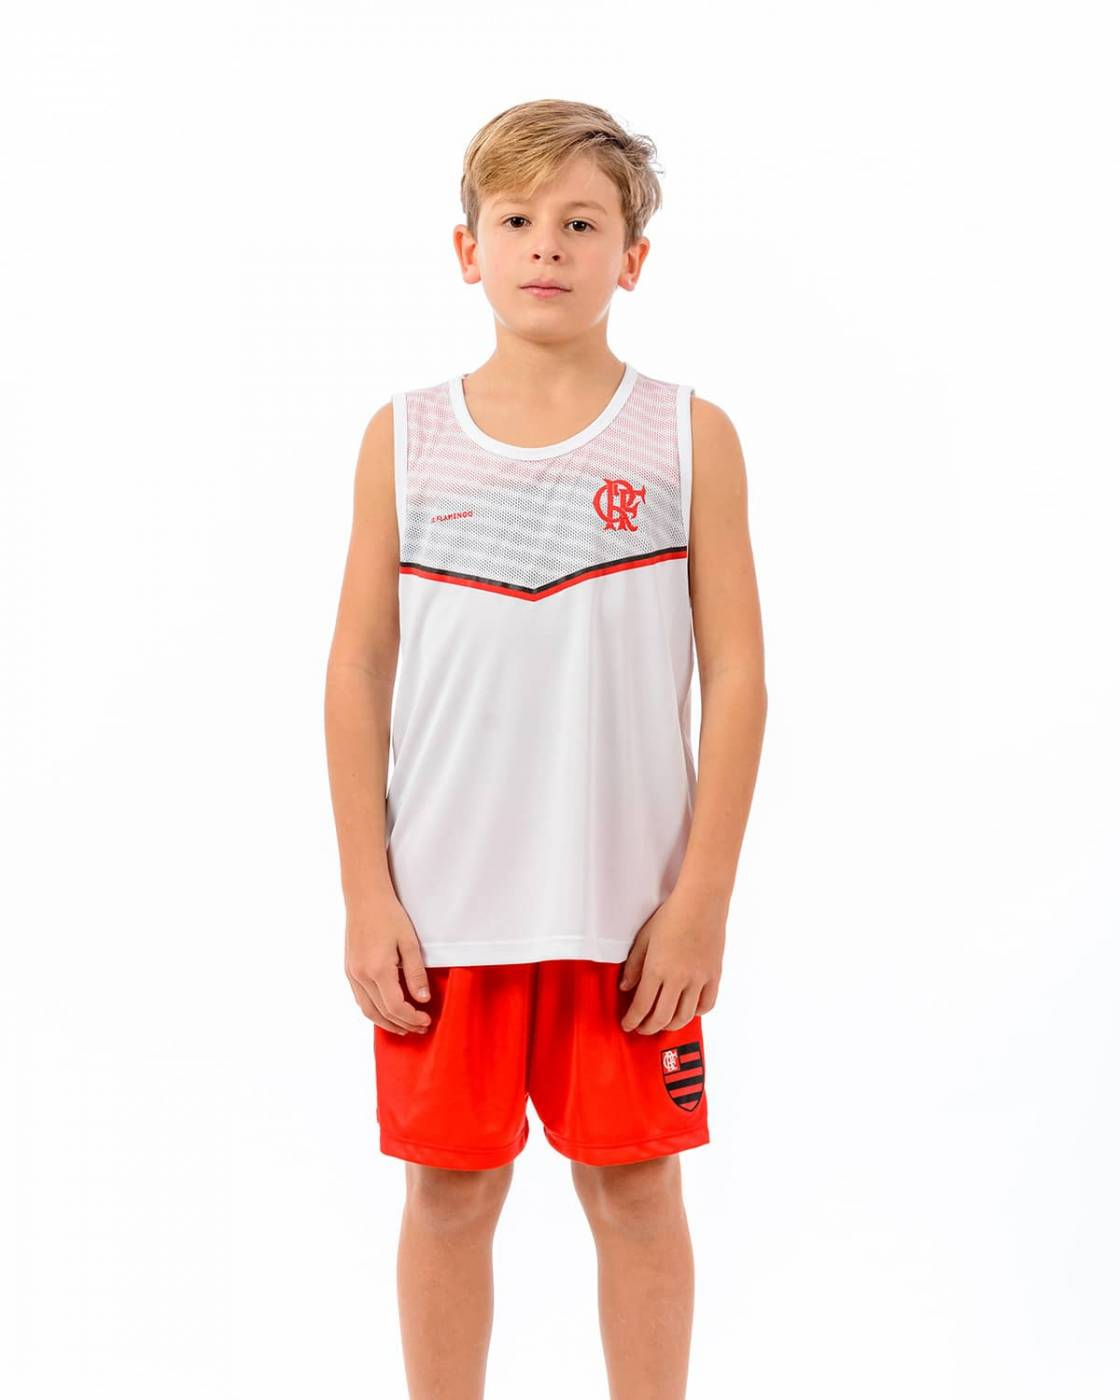 Regata Flamengo infantil Cover